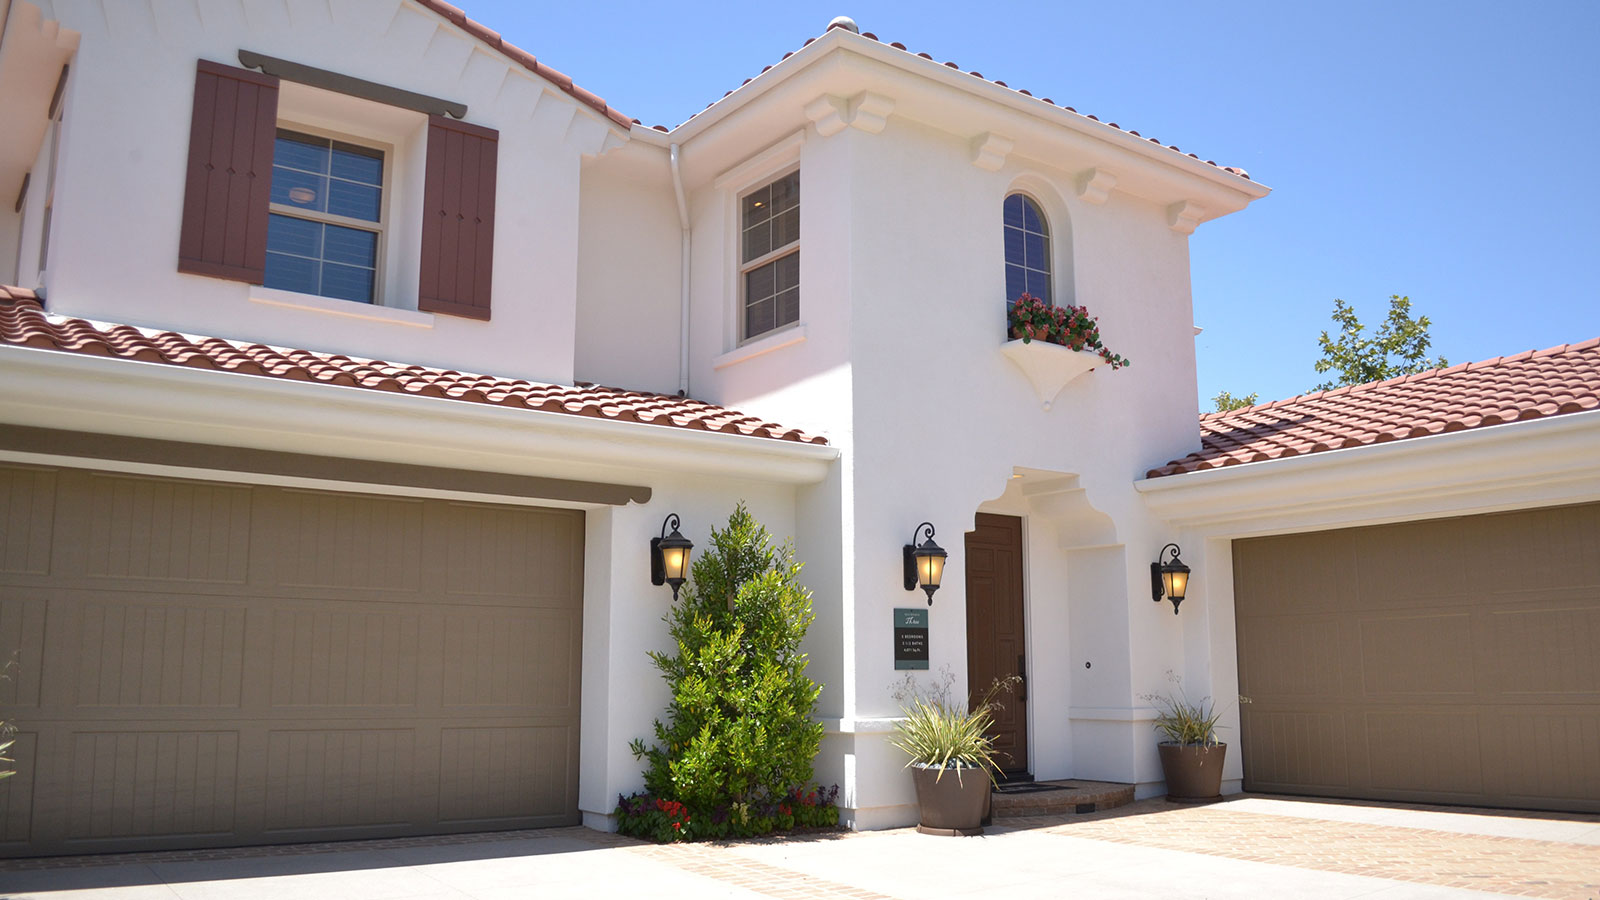 Tips for Keeping Your Home Safe in Tucson